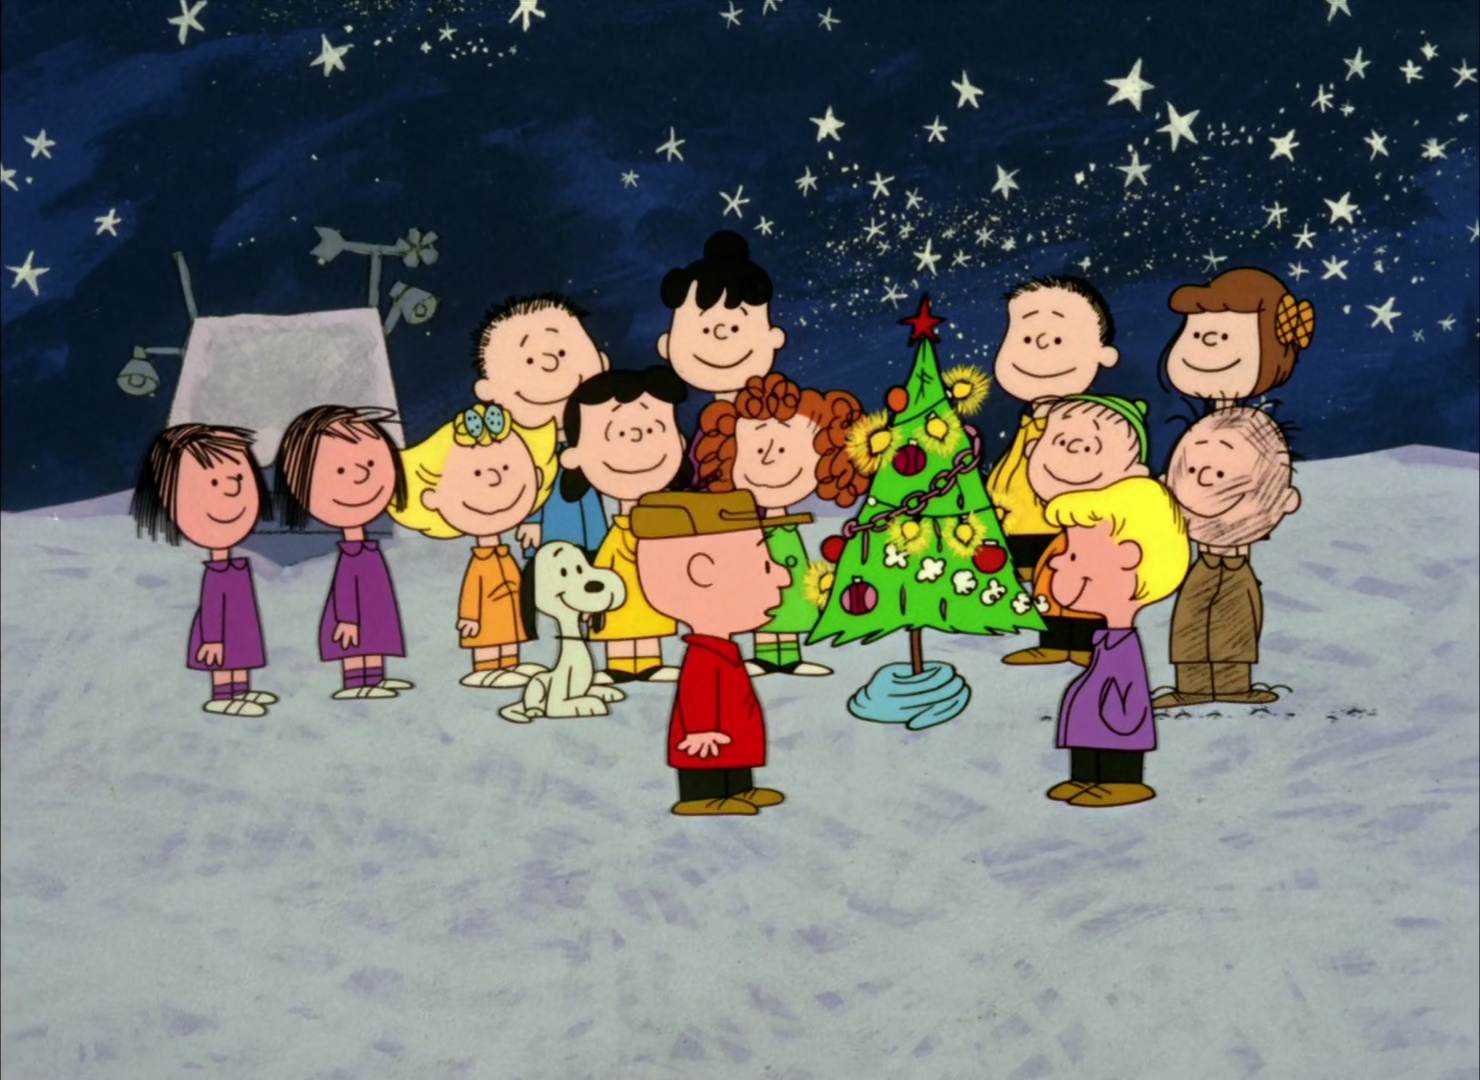 http://images1.wikia.nocookie.net/__cb20130327130903/peanuts/images/5/5e/A-Charlie-Brown-Christmas-image-1.jpg